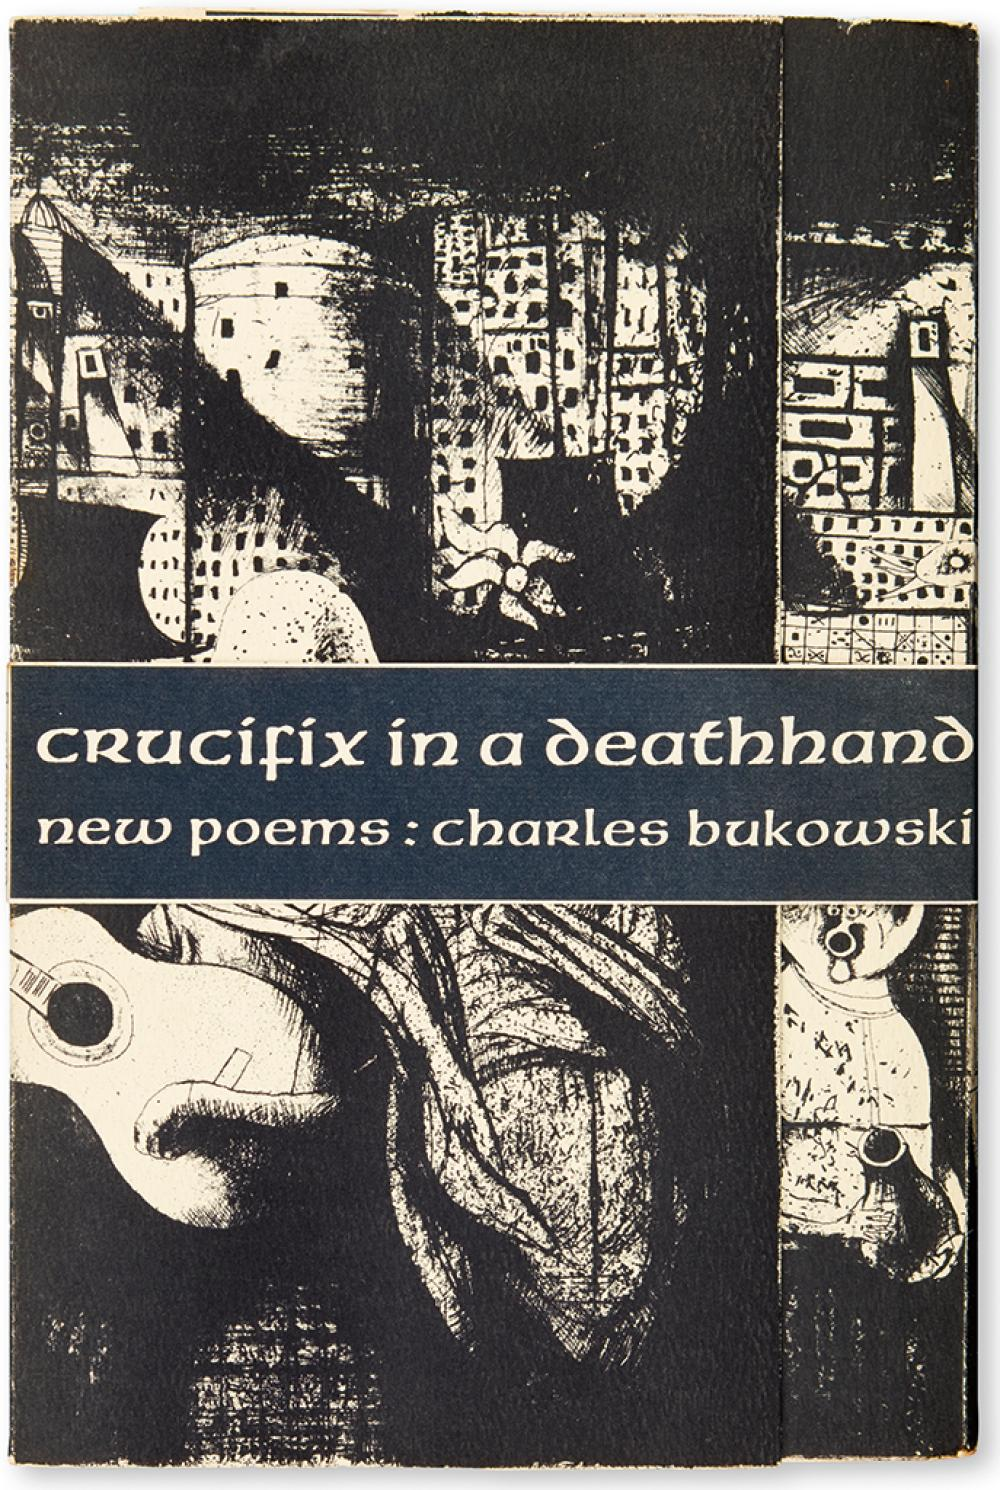 BUKOWSKI, CHARLES. It Catches My Heart in Its Hands: New & Selected Poems 1955-1963 * Crucifix in a Deathhand.